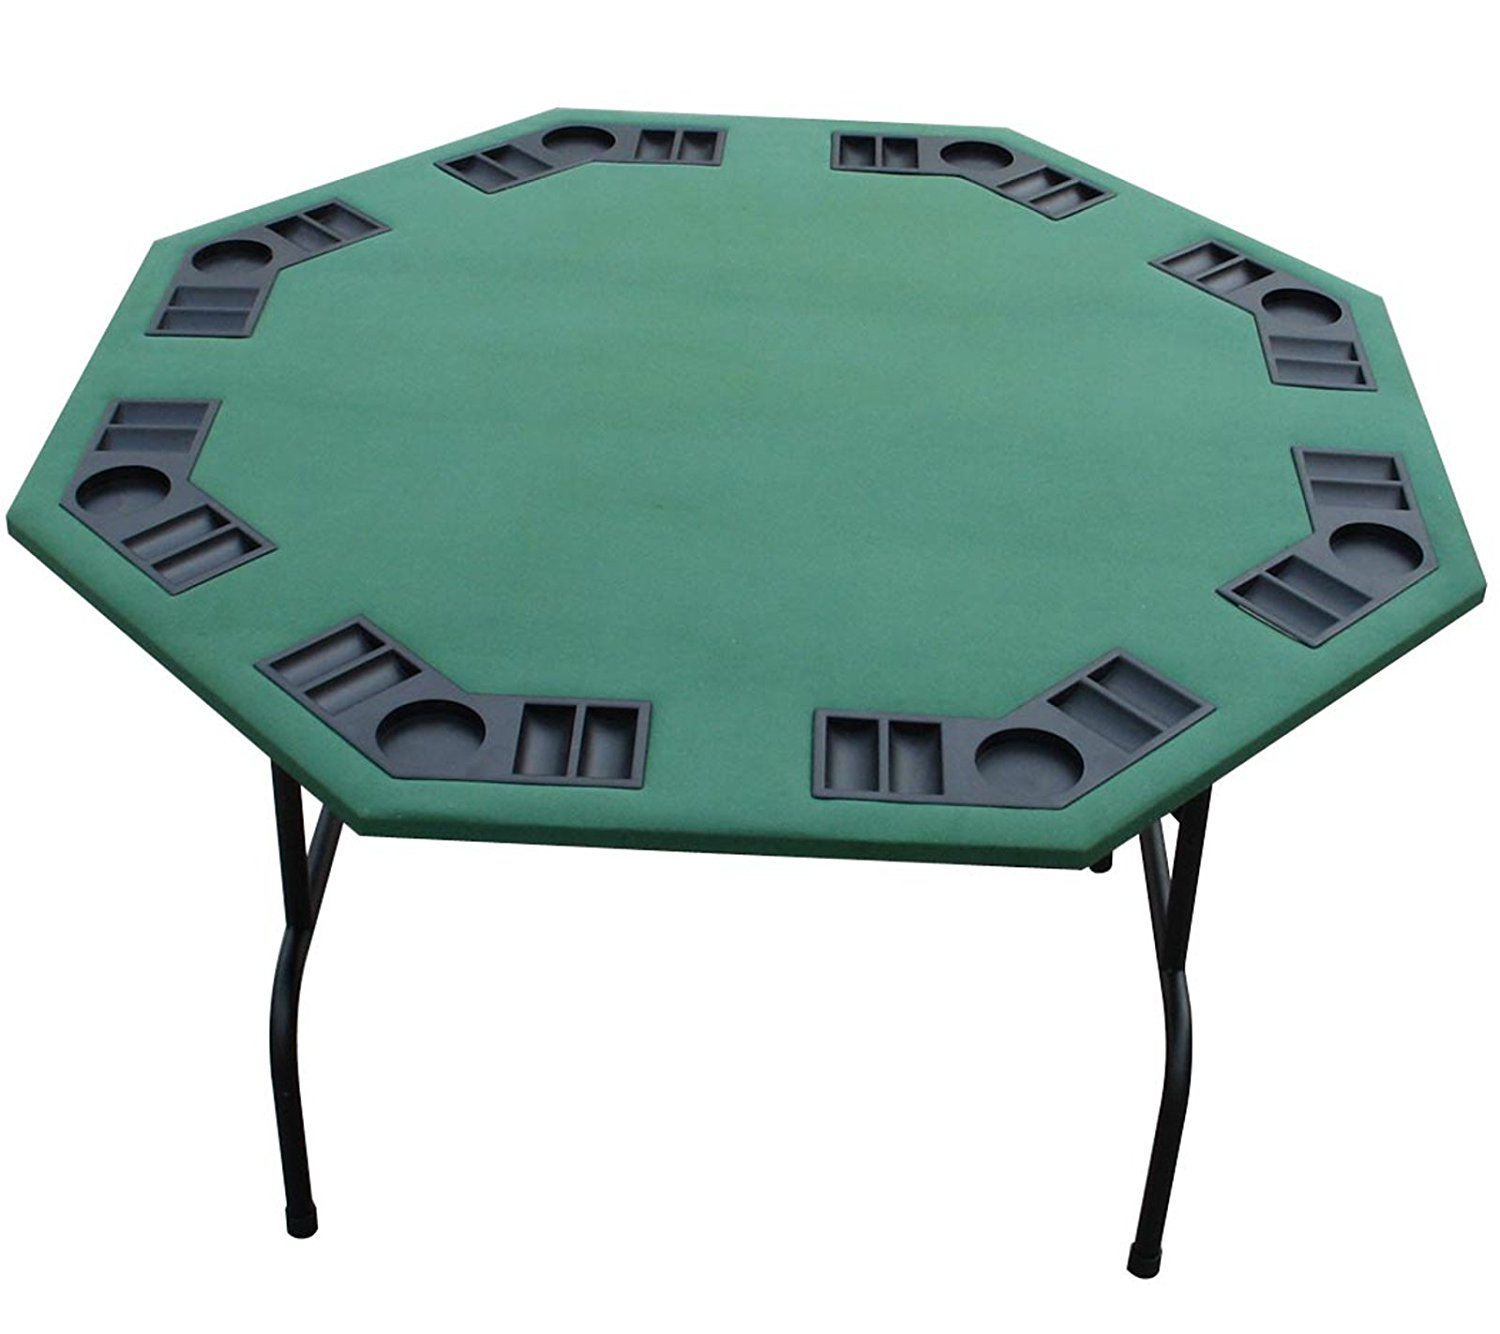 "Poker Outlet 52"" Green Felt Octagon Poker Card Game Table with Folding Steel Legs"